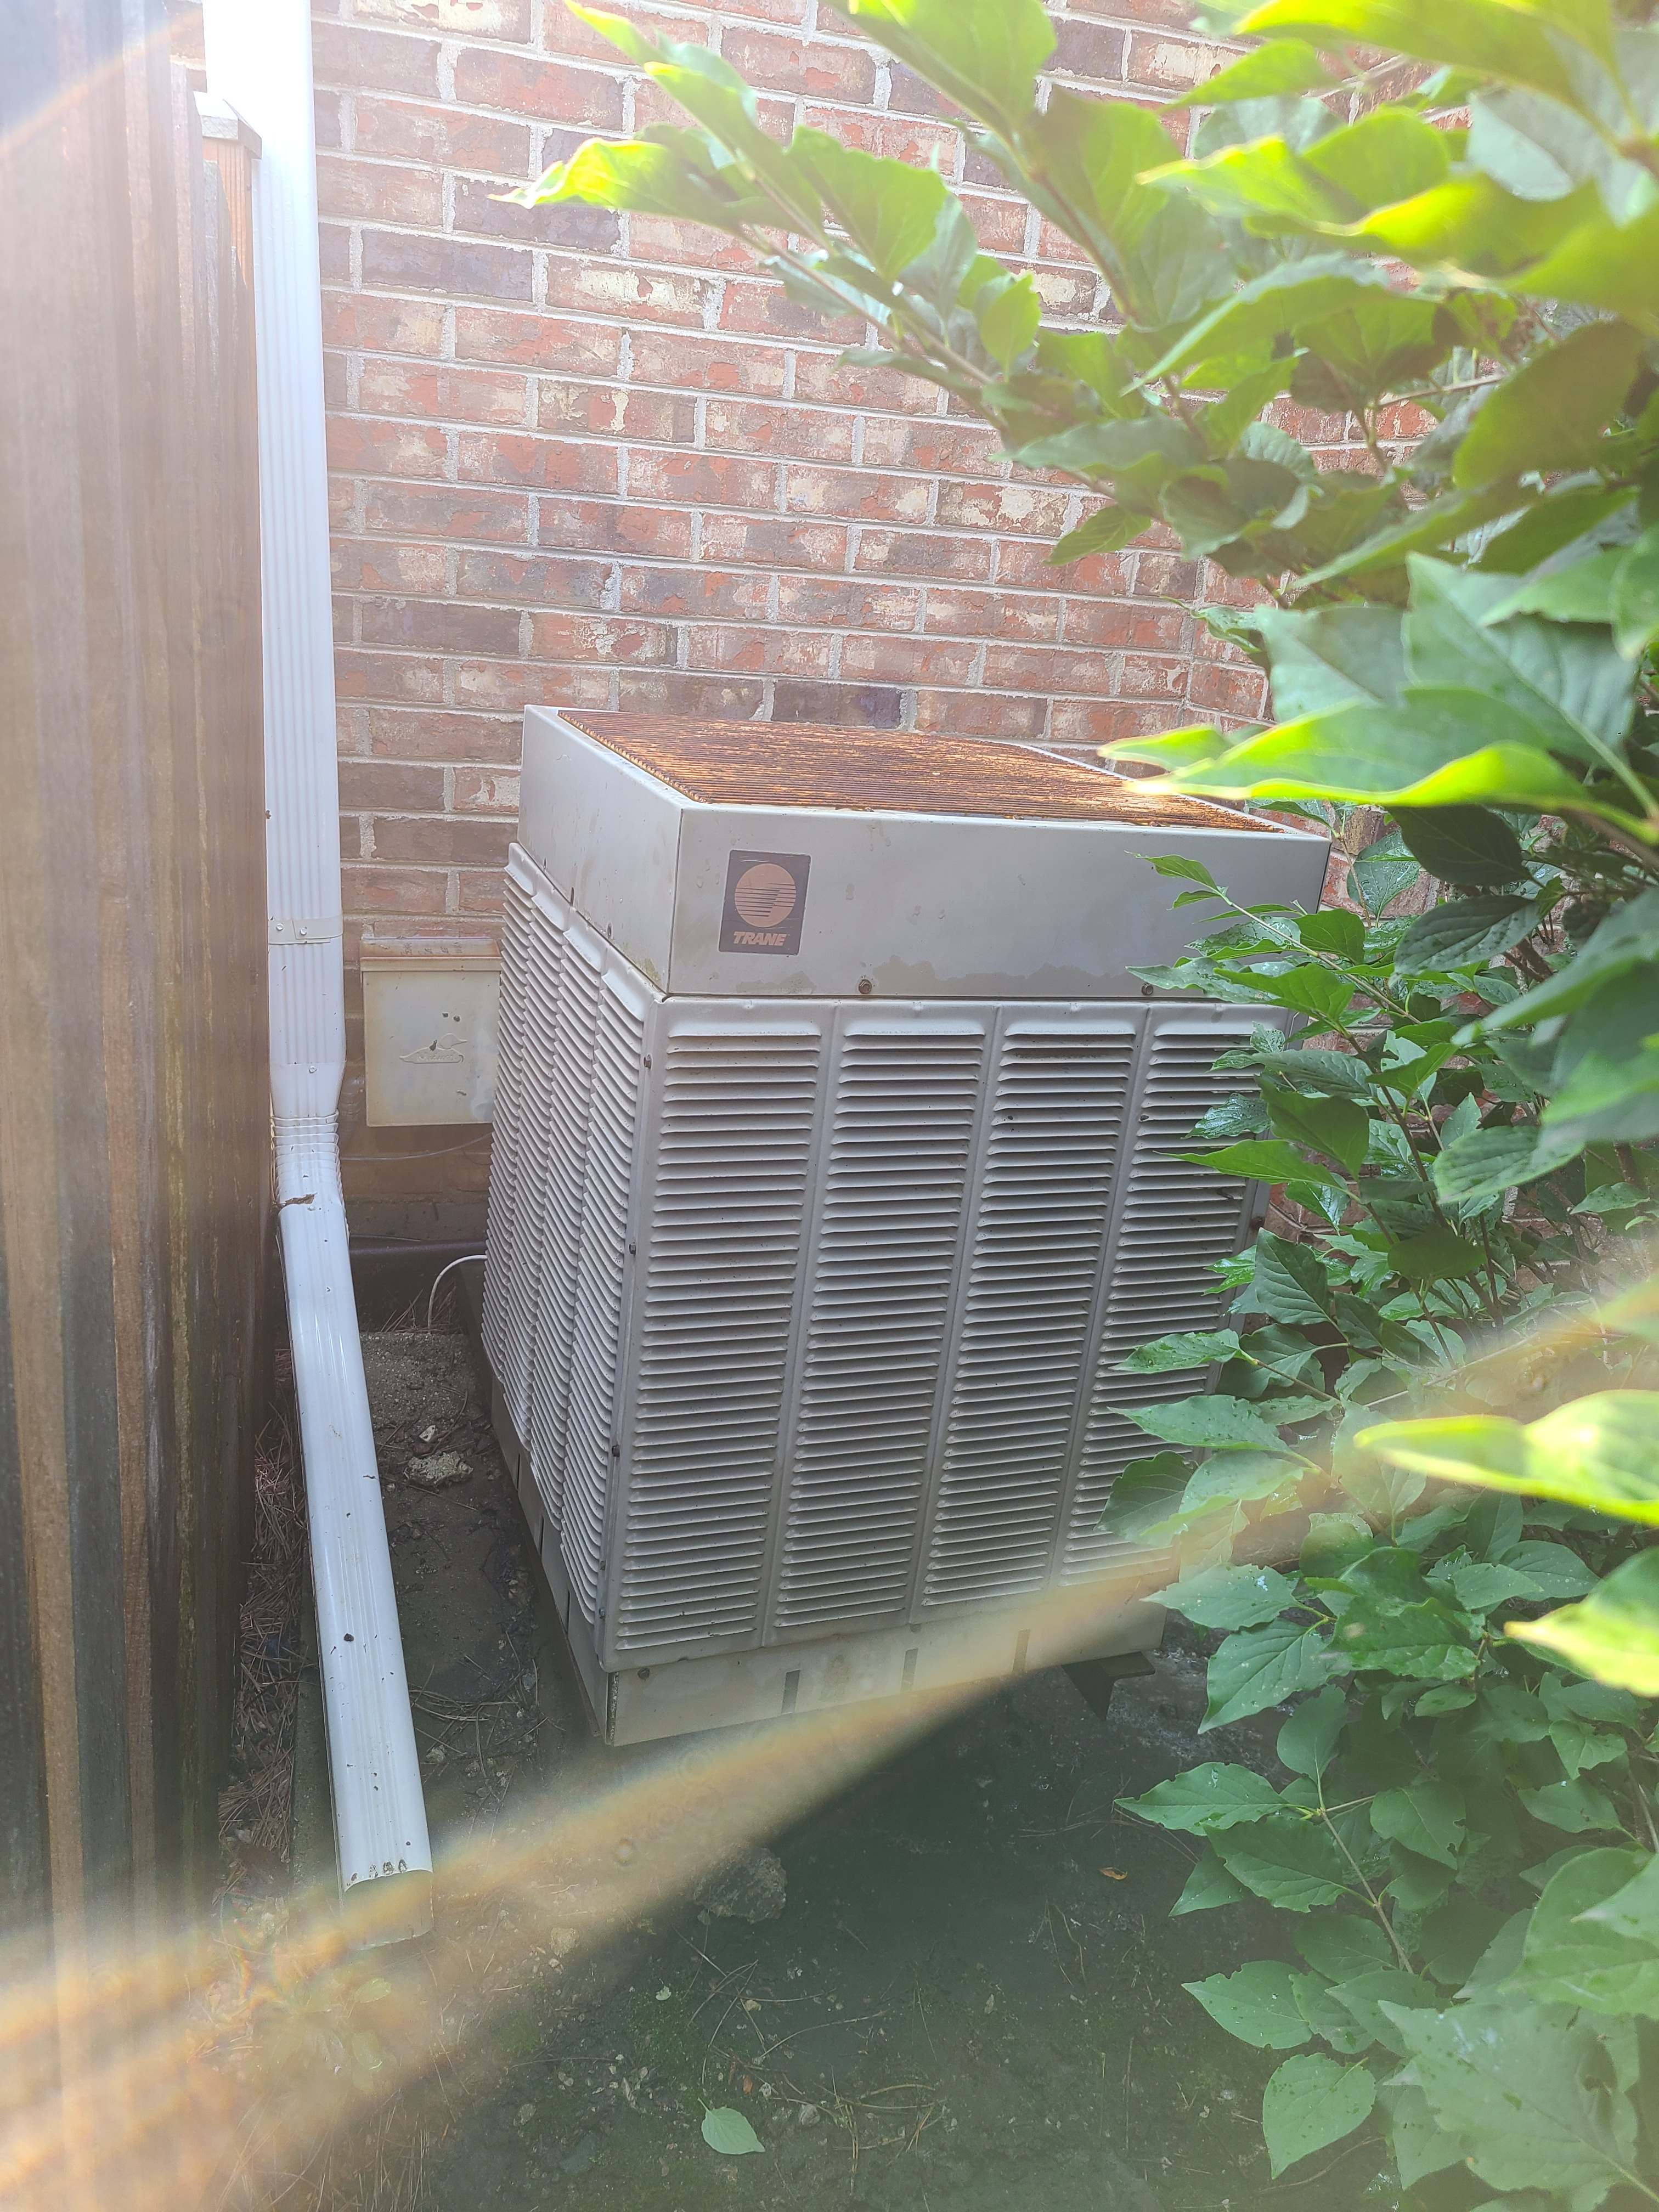 Working on ac old trane system  Arlington heights